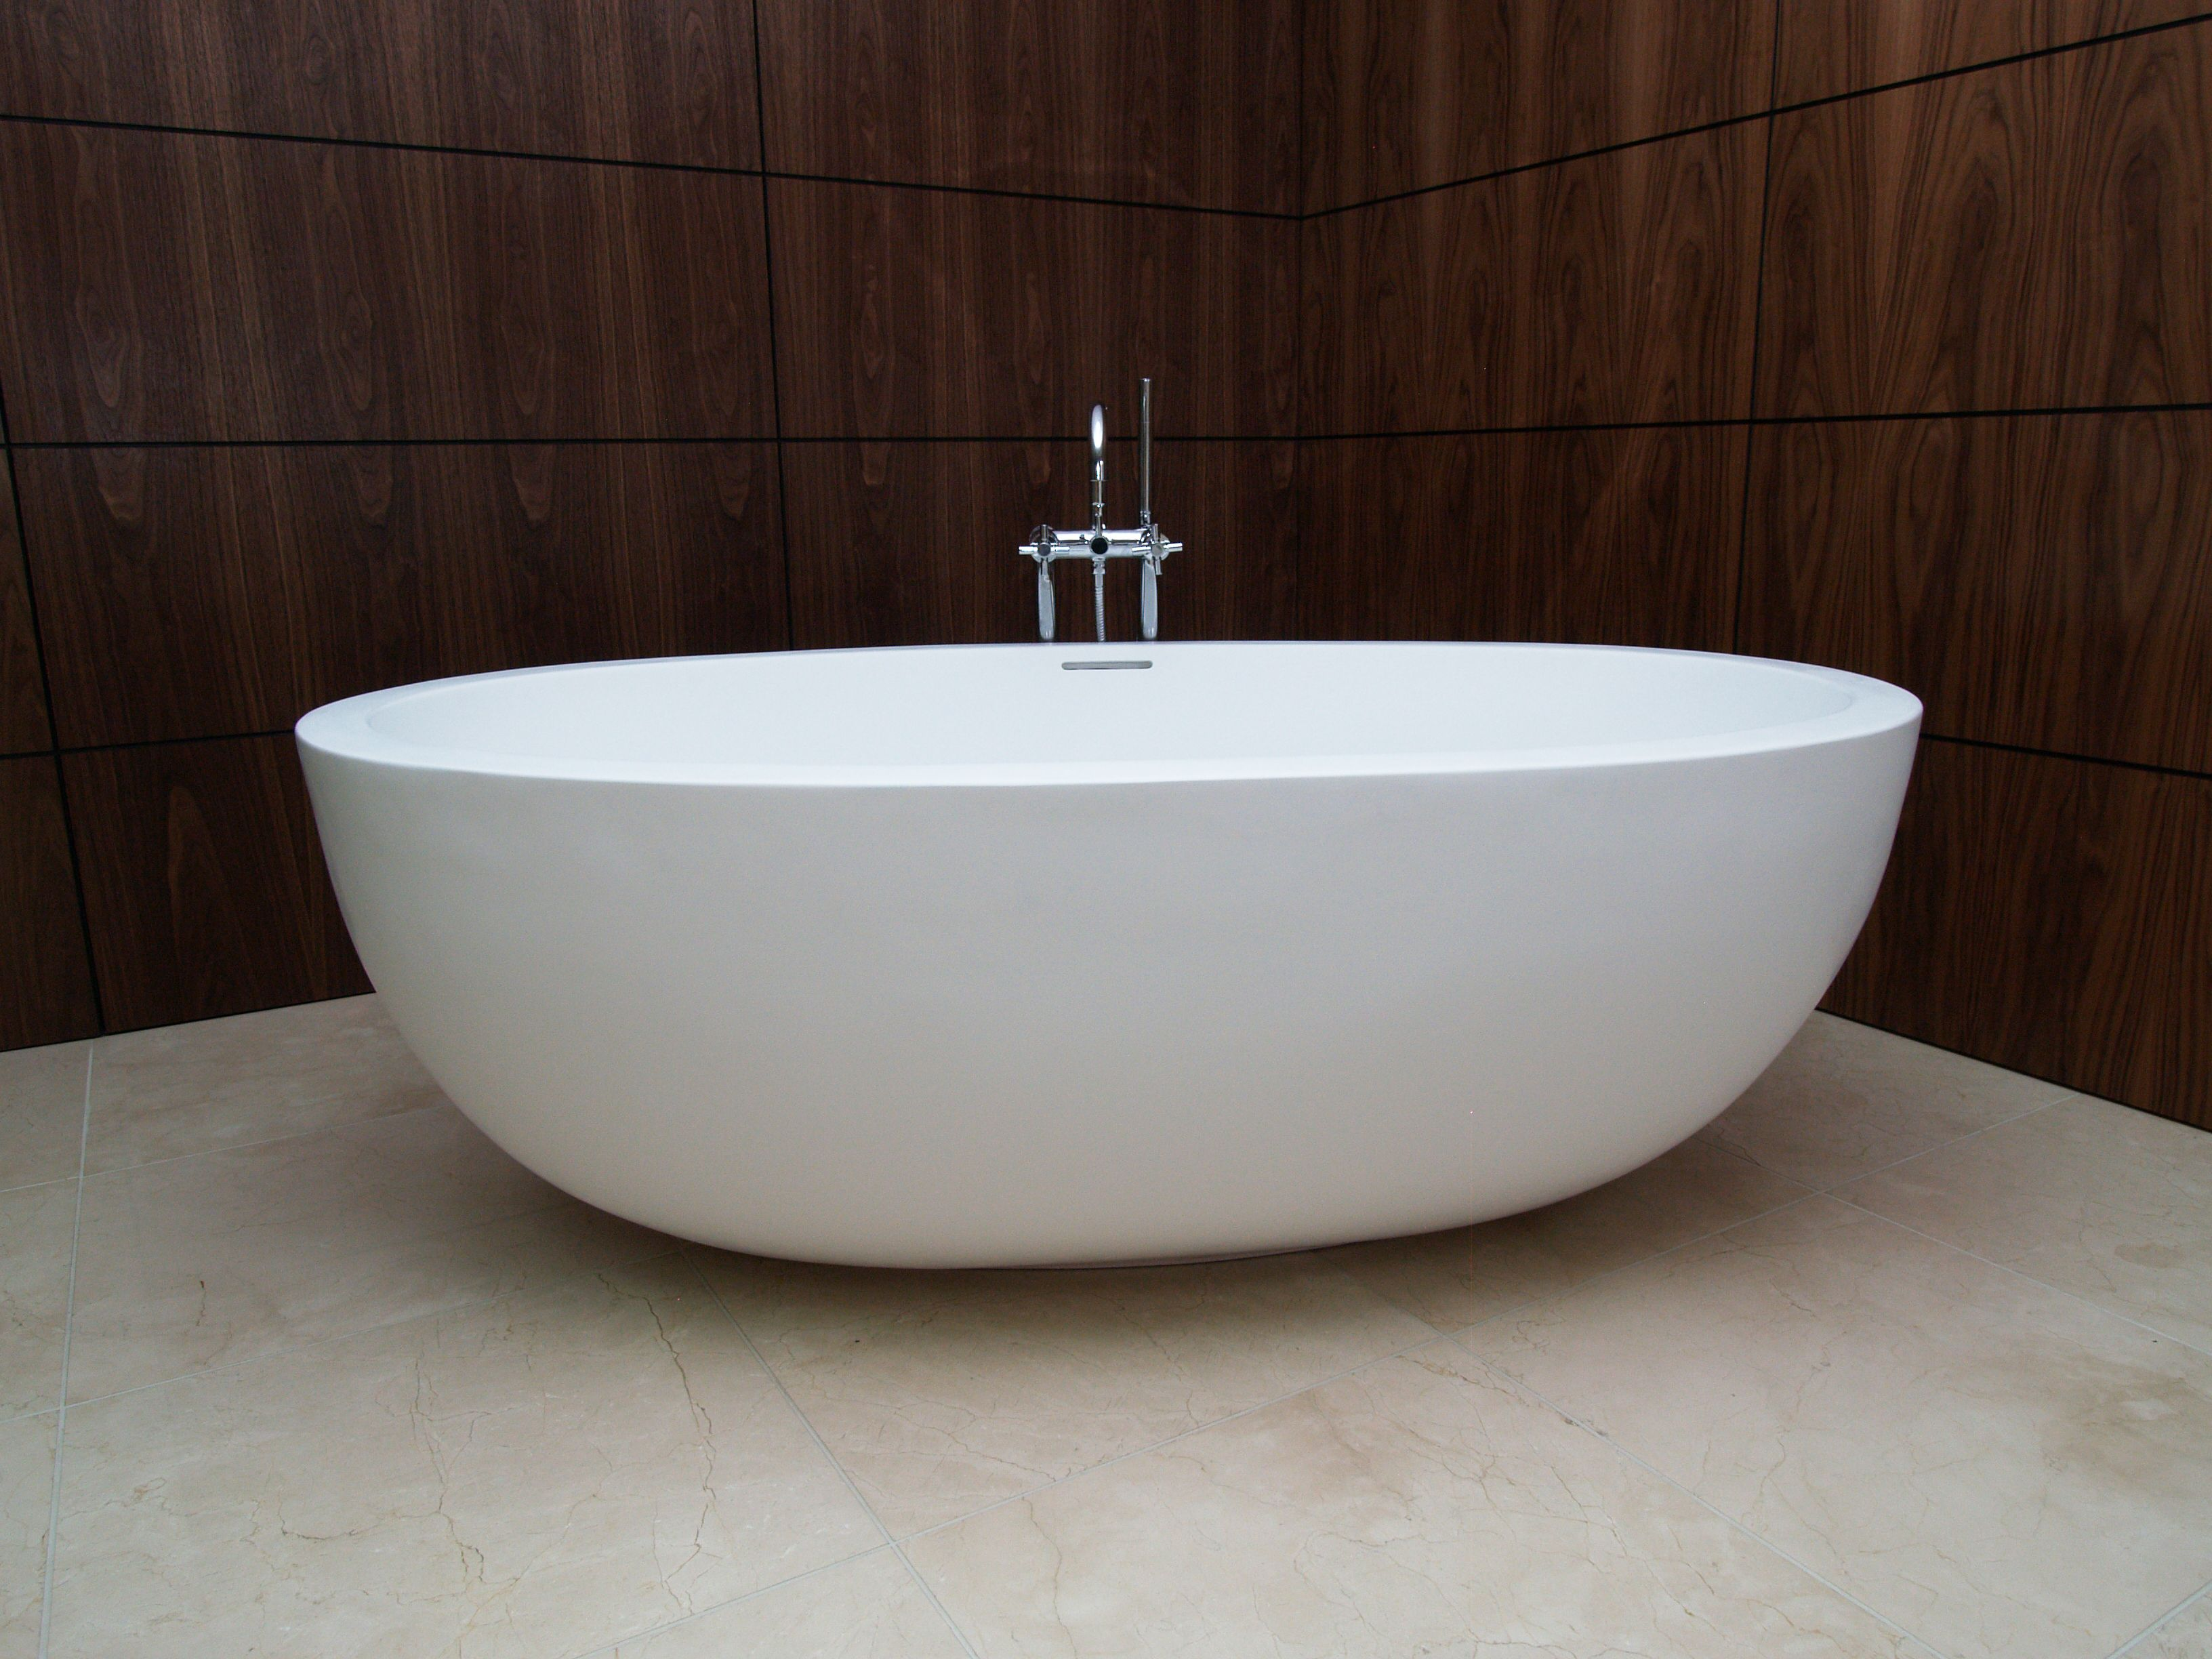 bathtub lifestyle bathtub is our second largest and most popular bathtub - Bathtub